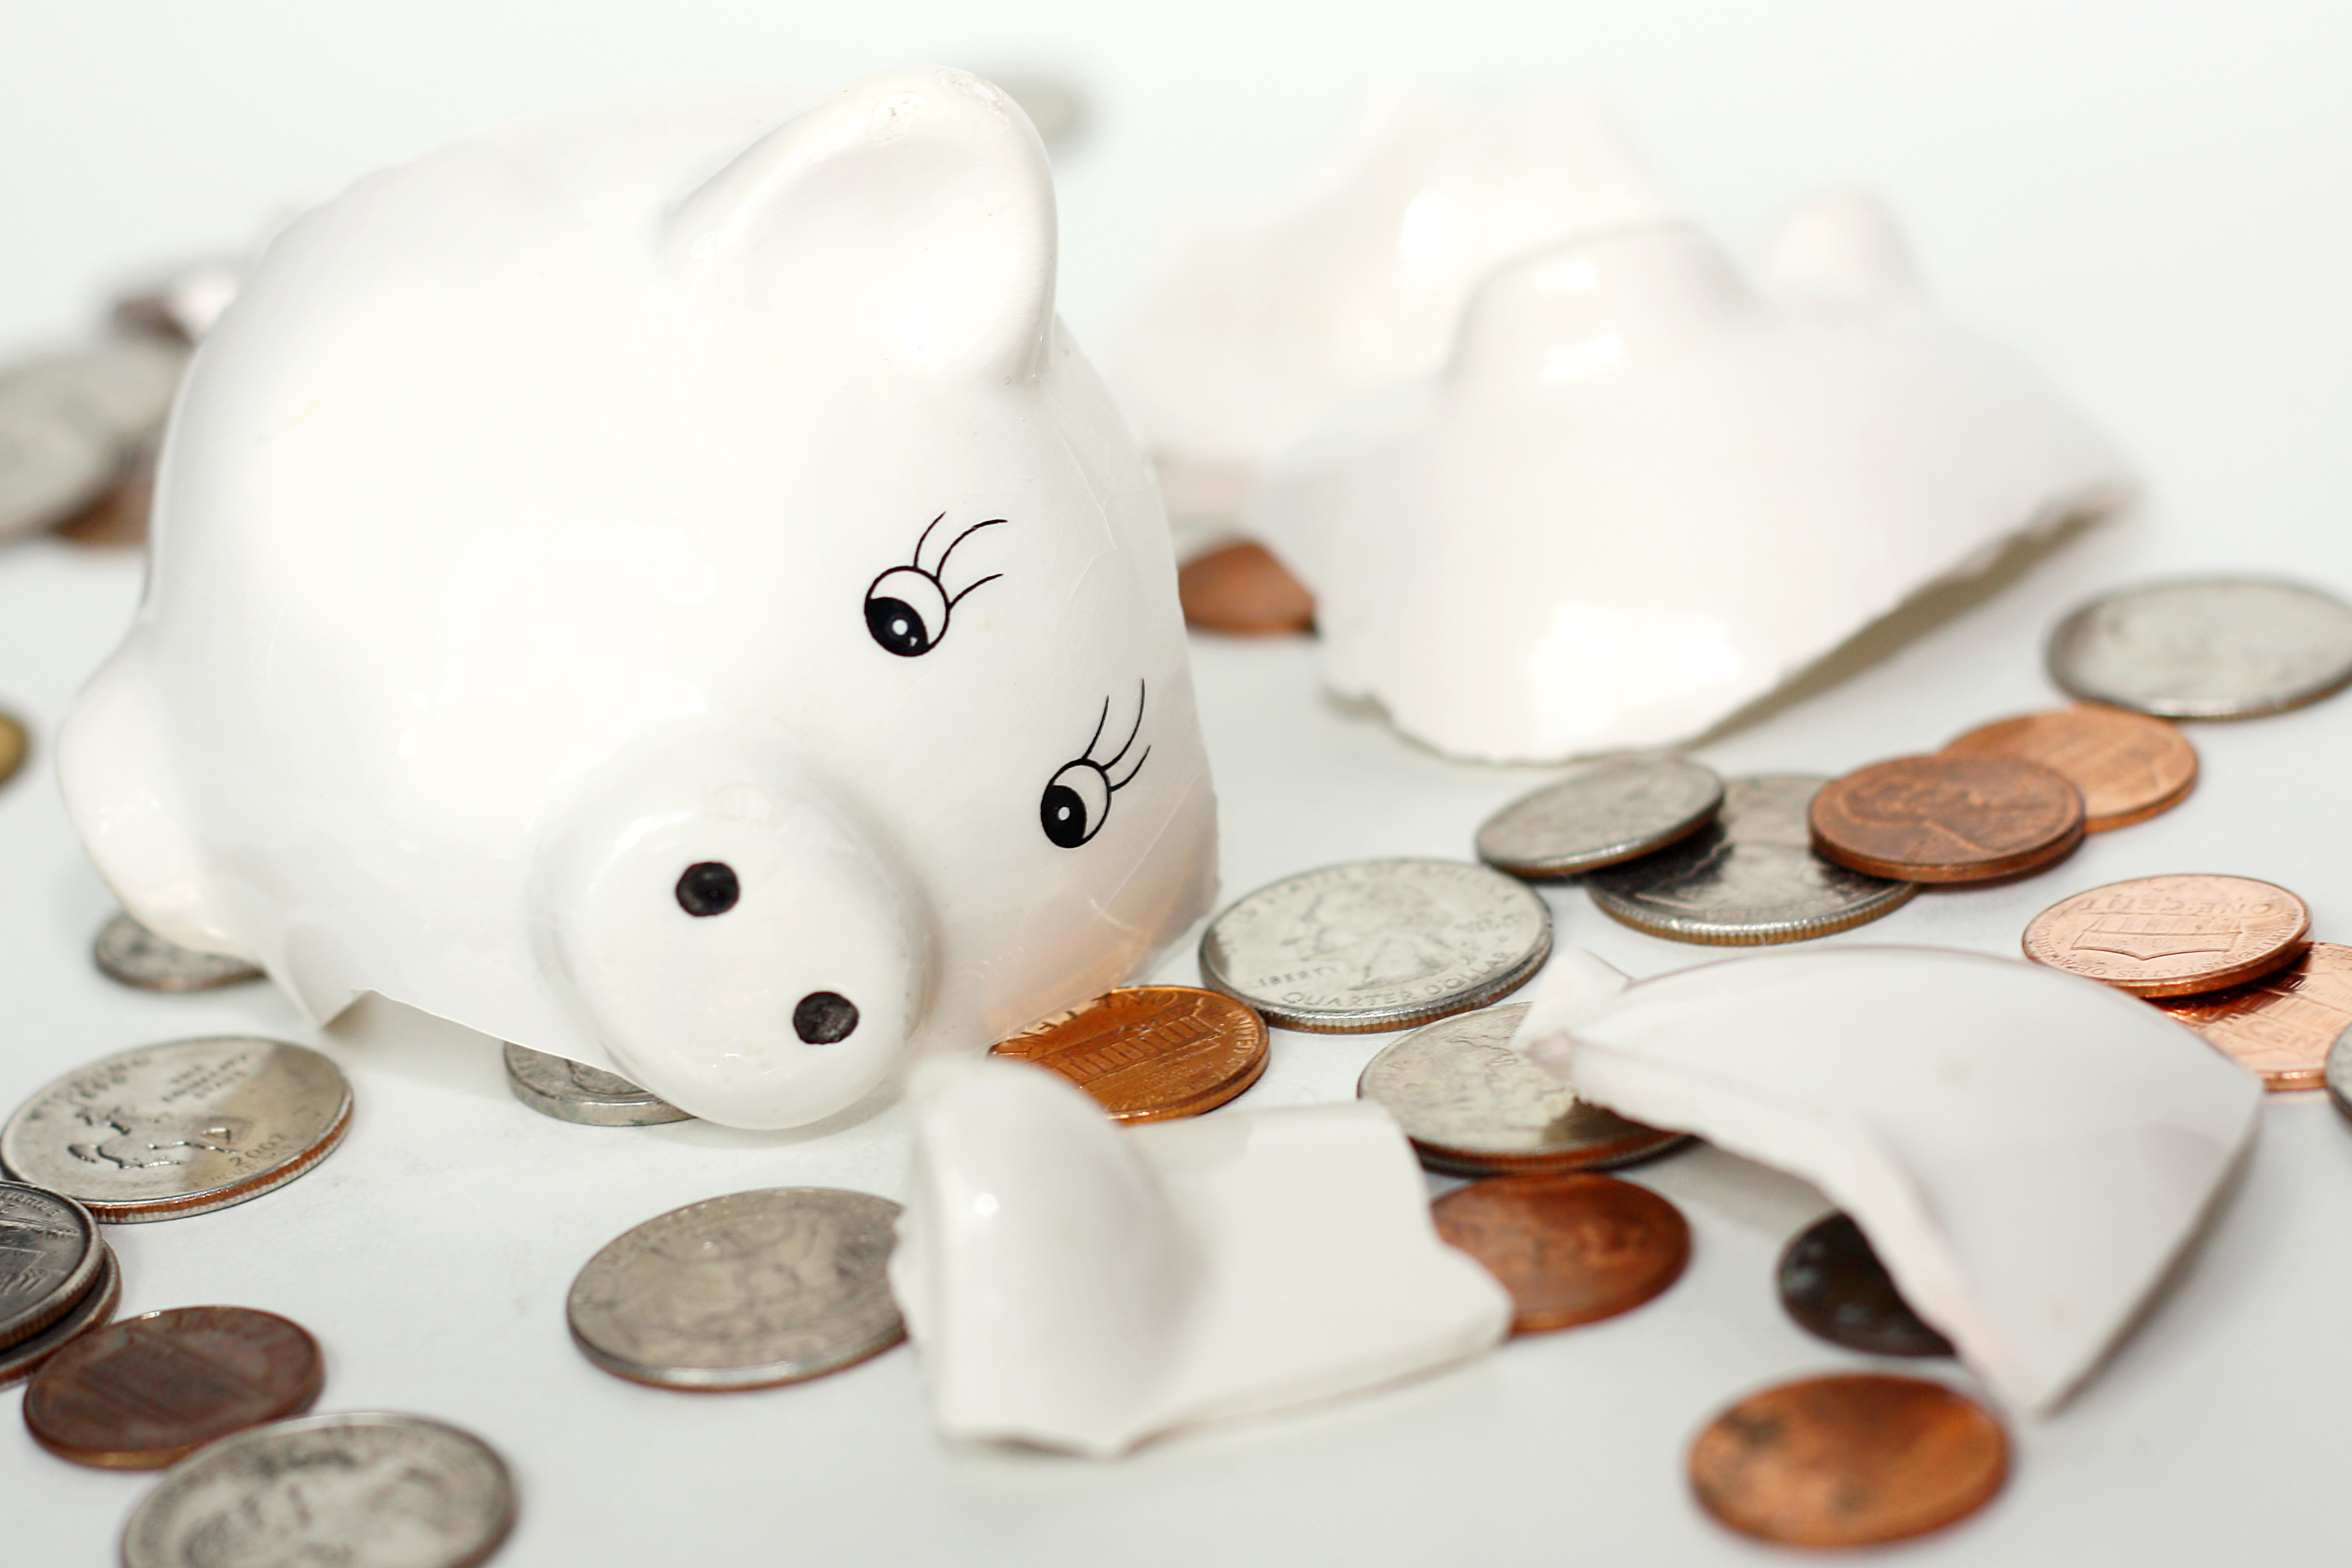 Broken Small Piggy Bank Surrounded By Spilled Coins Study